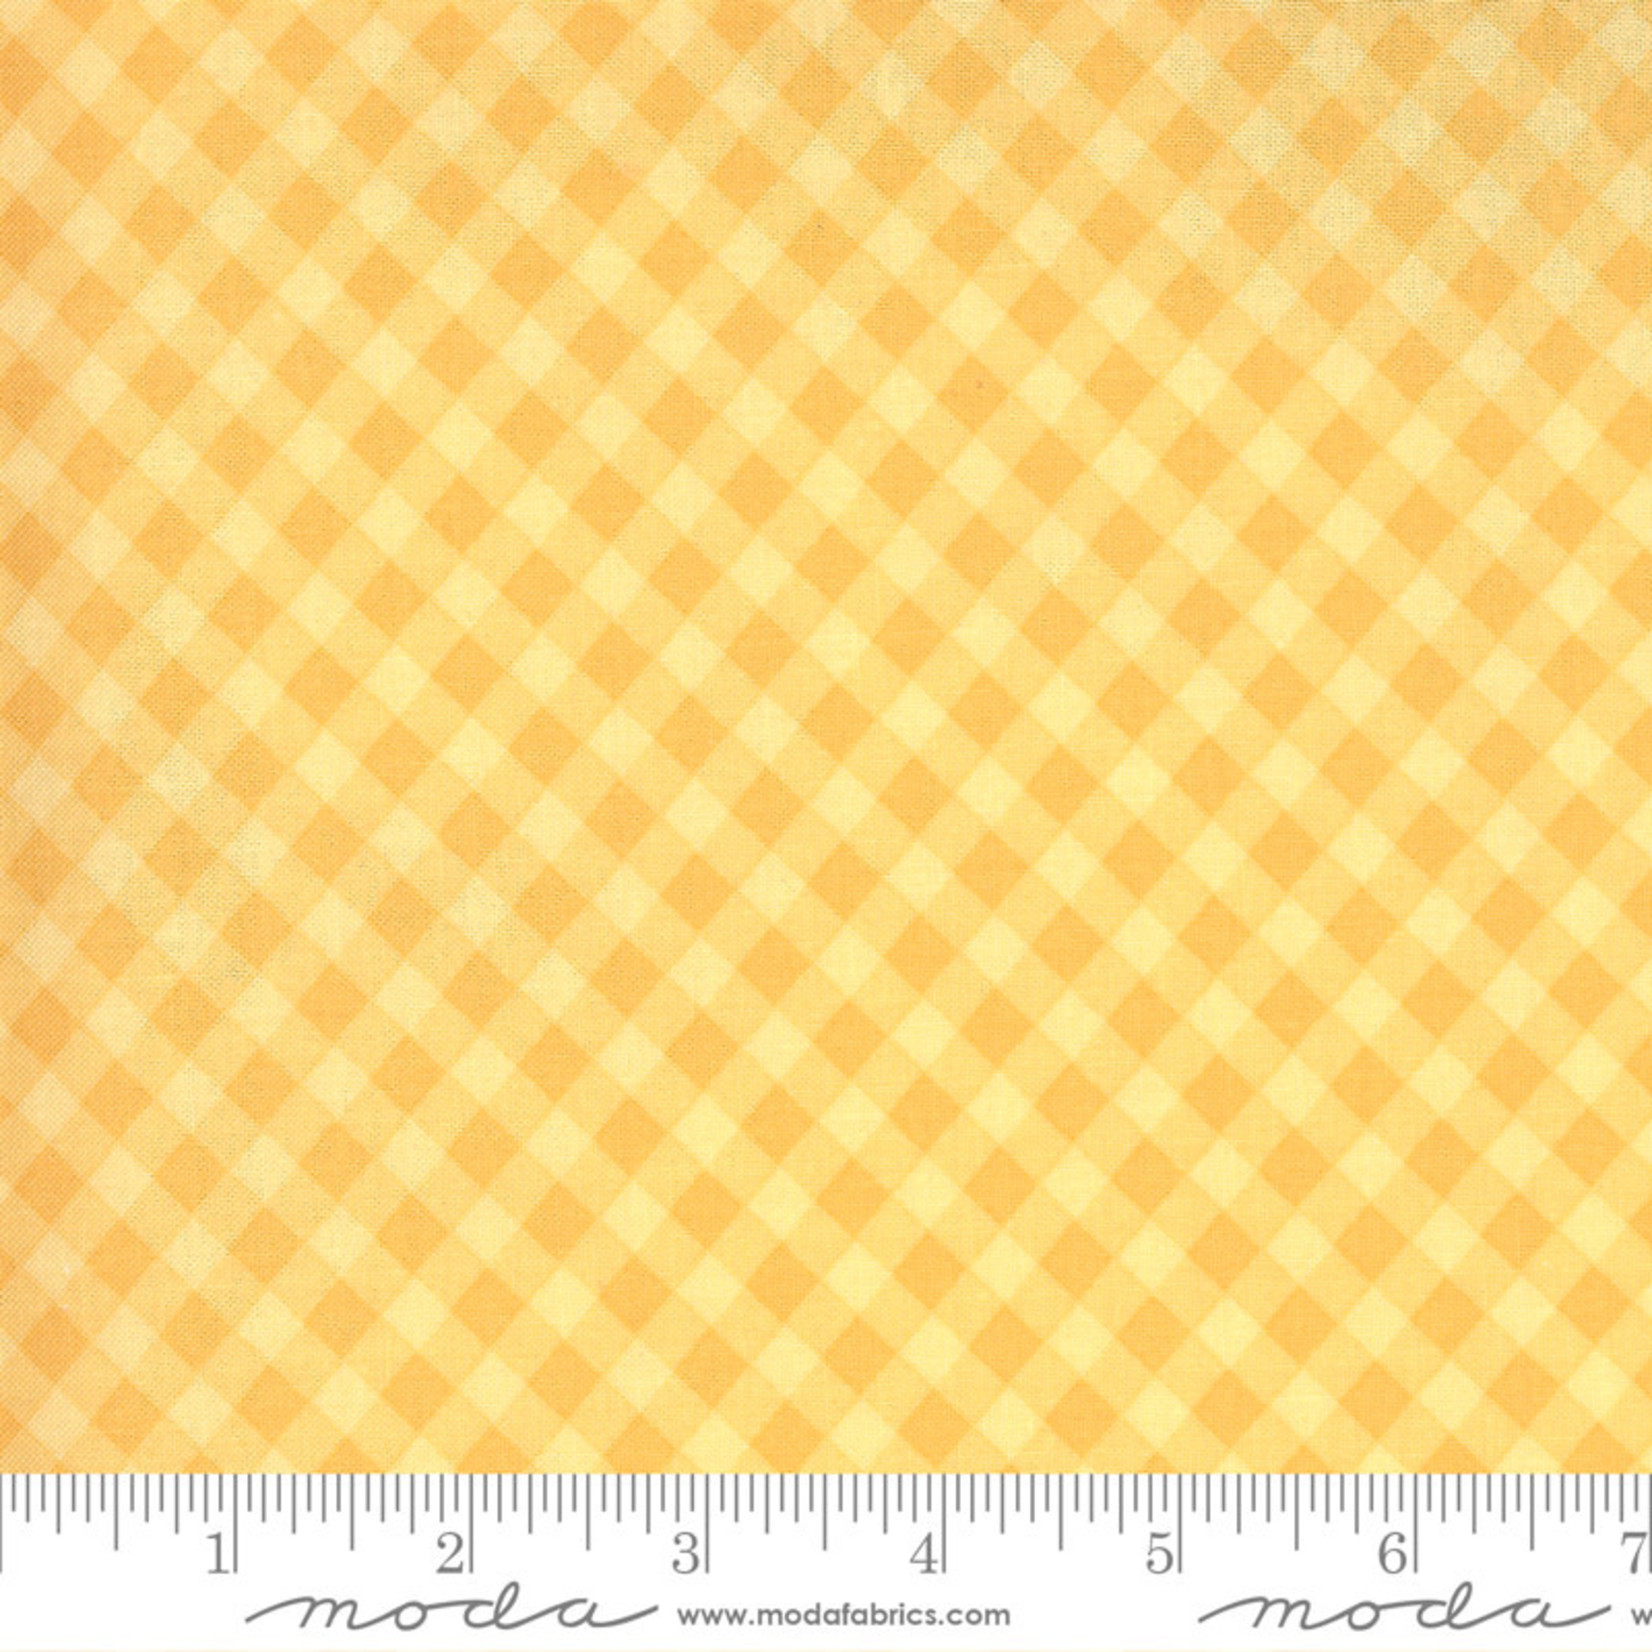 Sweetwater Spring Chicken, Gingham, Yellow 55523-14 $0.20 per cm or $20/m